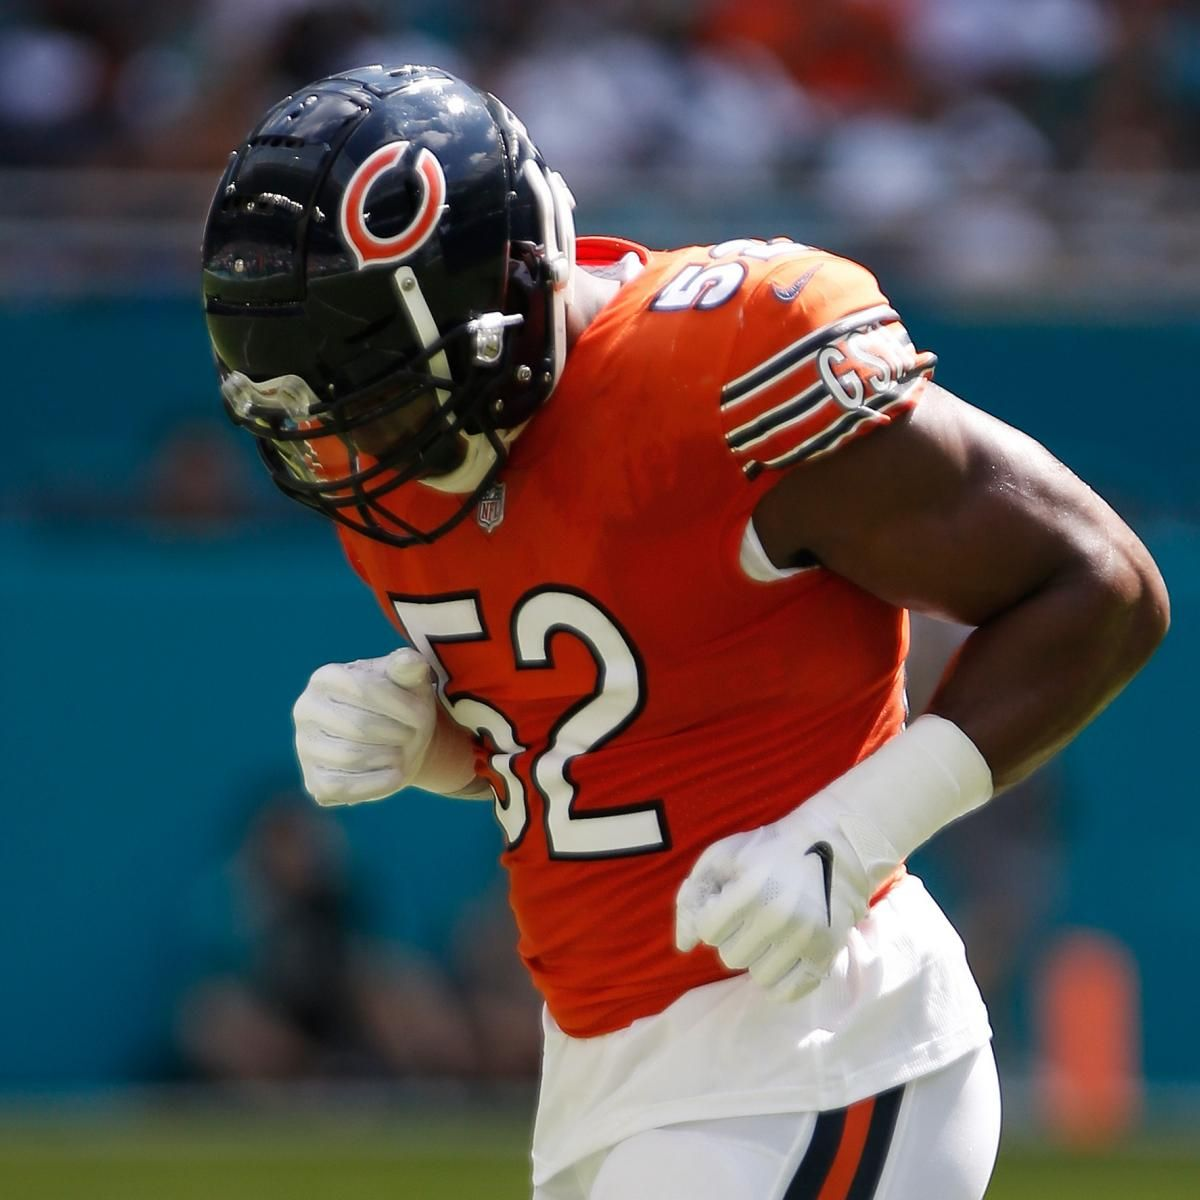 Chicago Bears Pass Rusher Khalil Mack Suffered An Ankle Injury In Sunday S Overtime Loss To The Miami Dolph Nfl Football Players Bears Football Chicago Bears